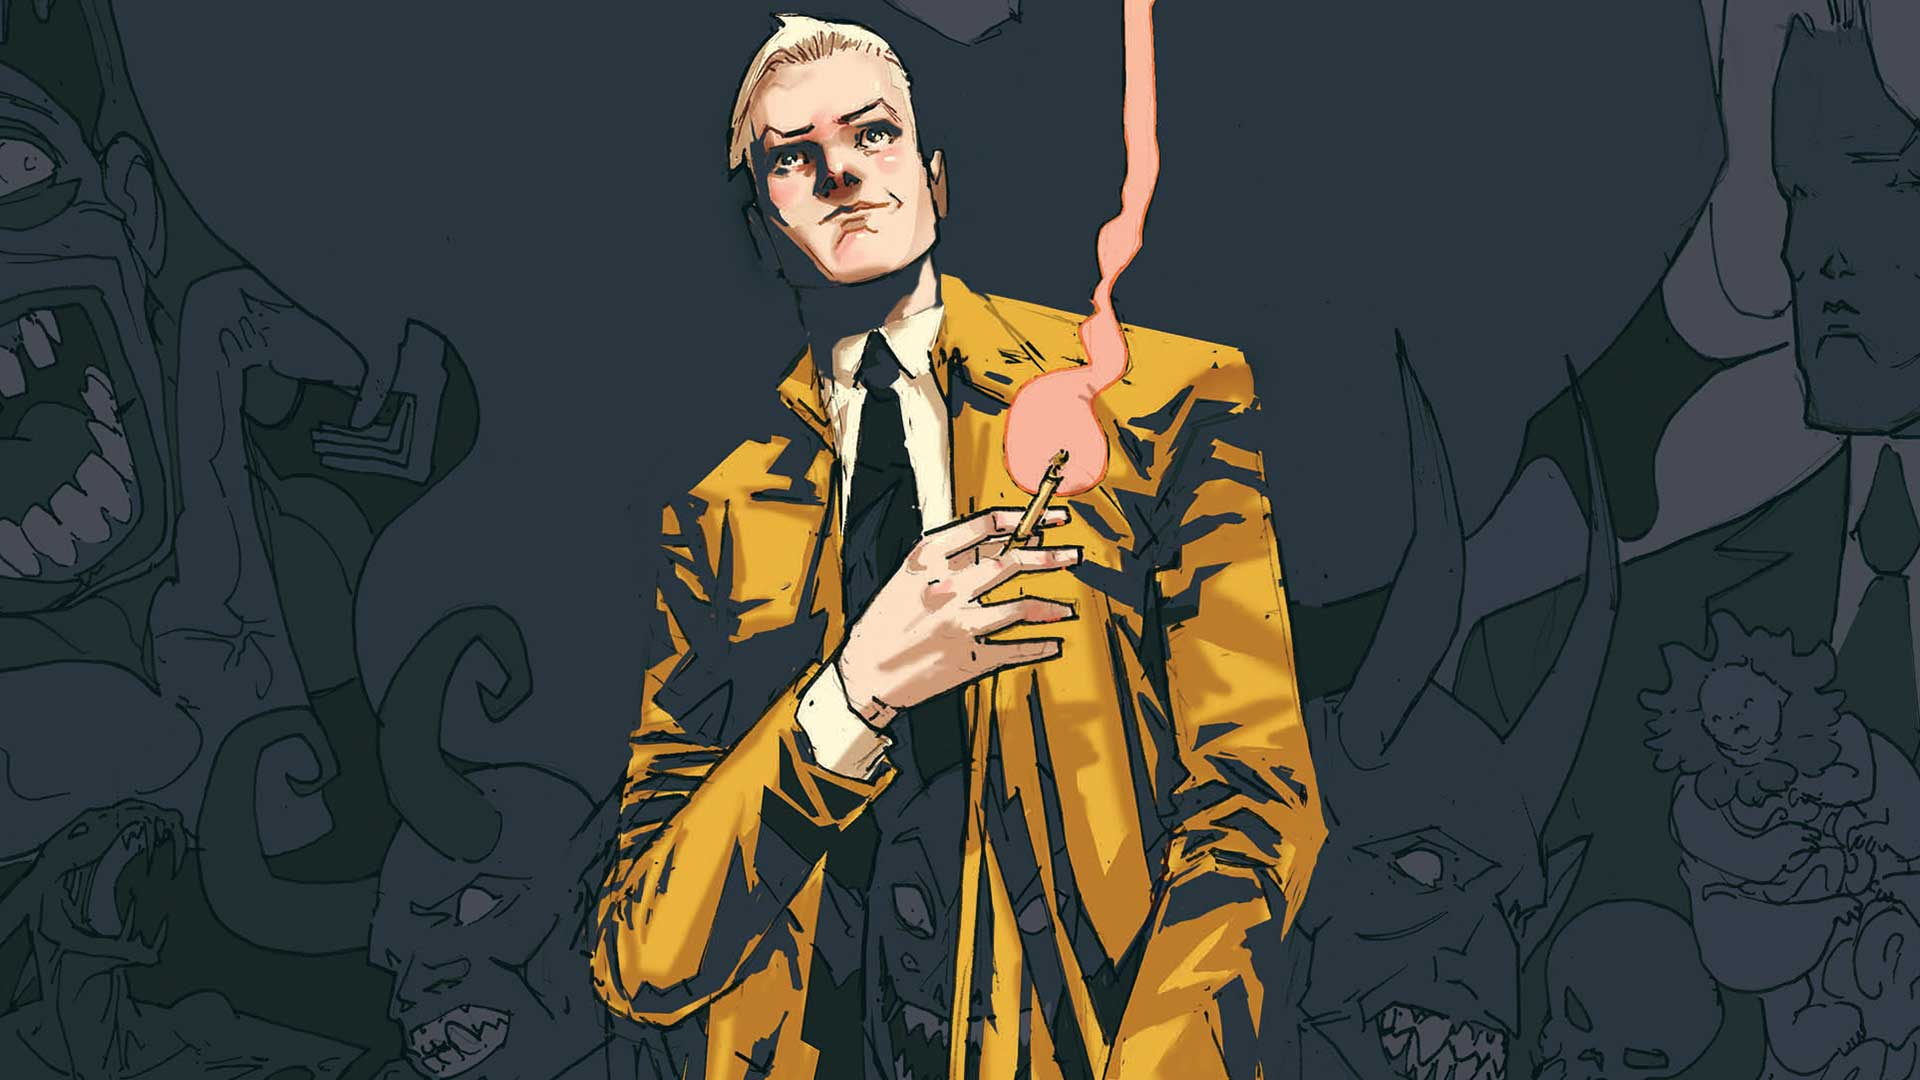 Constantine: The Hellblazer Vol. 2 – The Art of the Deal Review